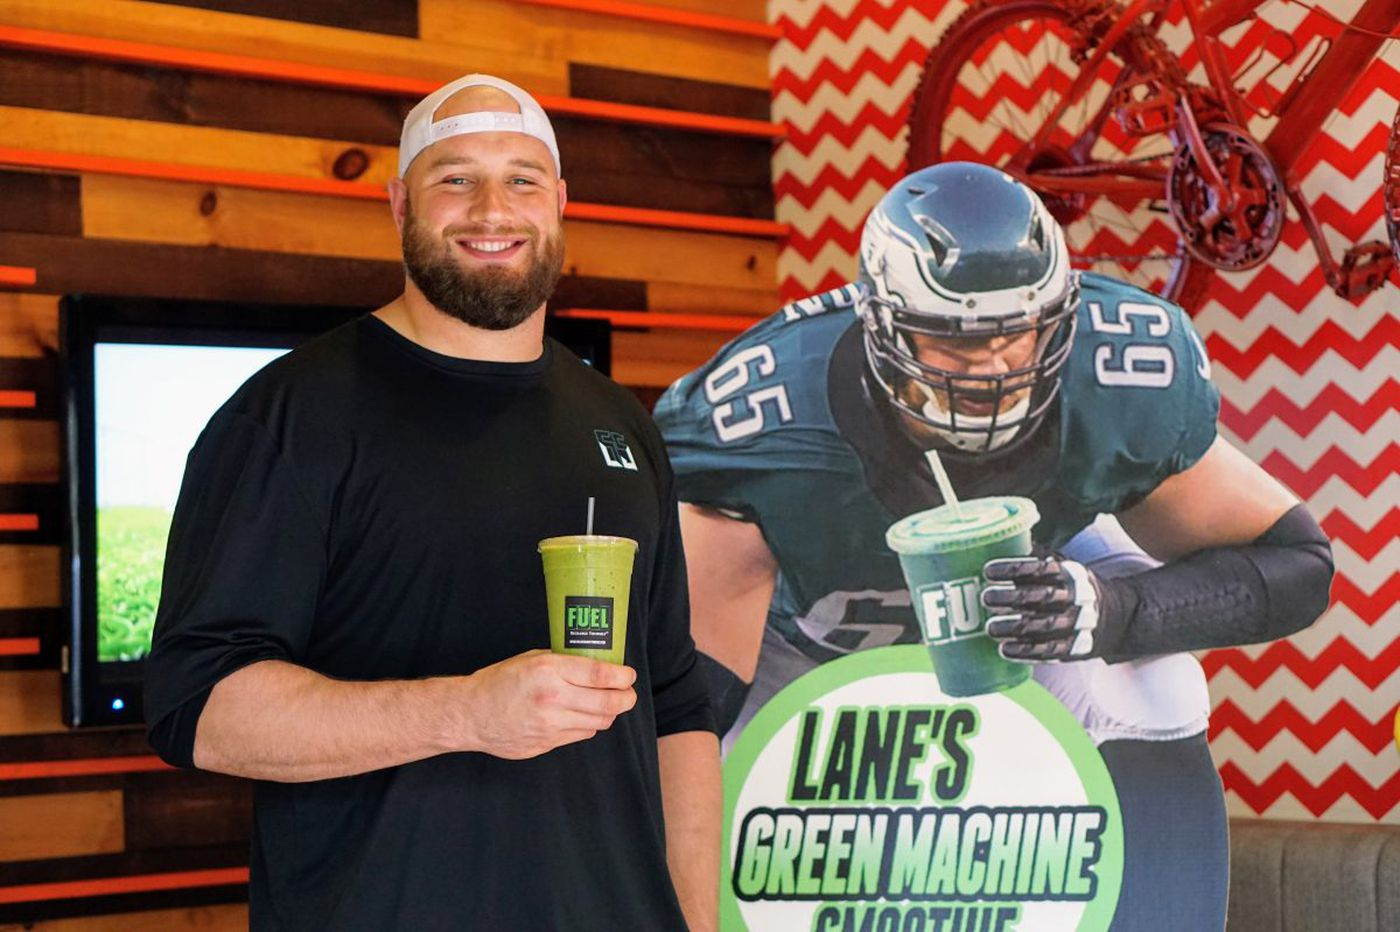 Eagles' Lane Johnson offers smoothie at Fuel to benefit CHOP